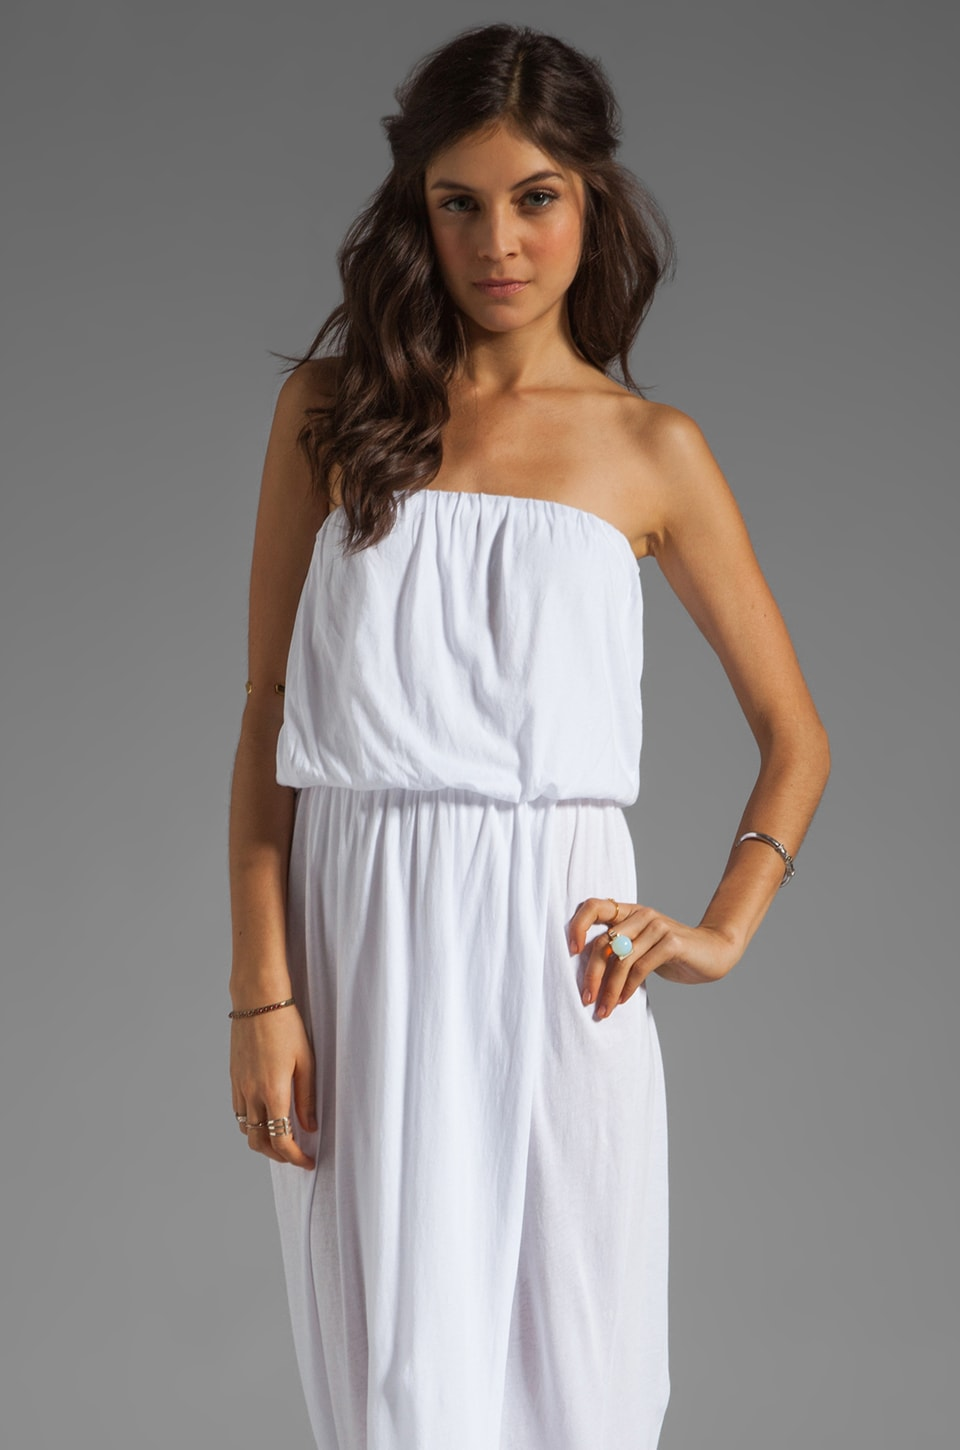 Velvet by Graham & Spencer Shivan Sheer Jersey Maxi Dress in White